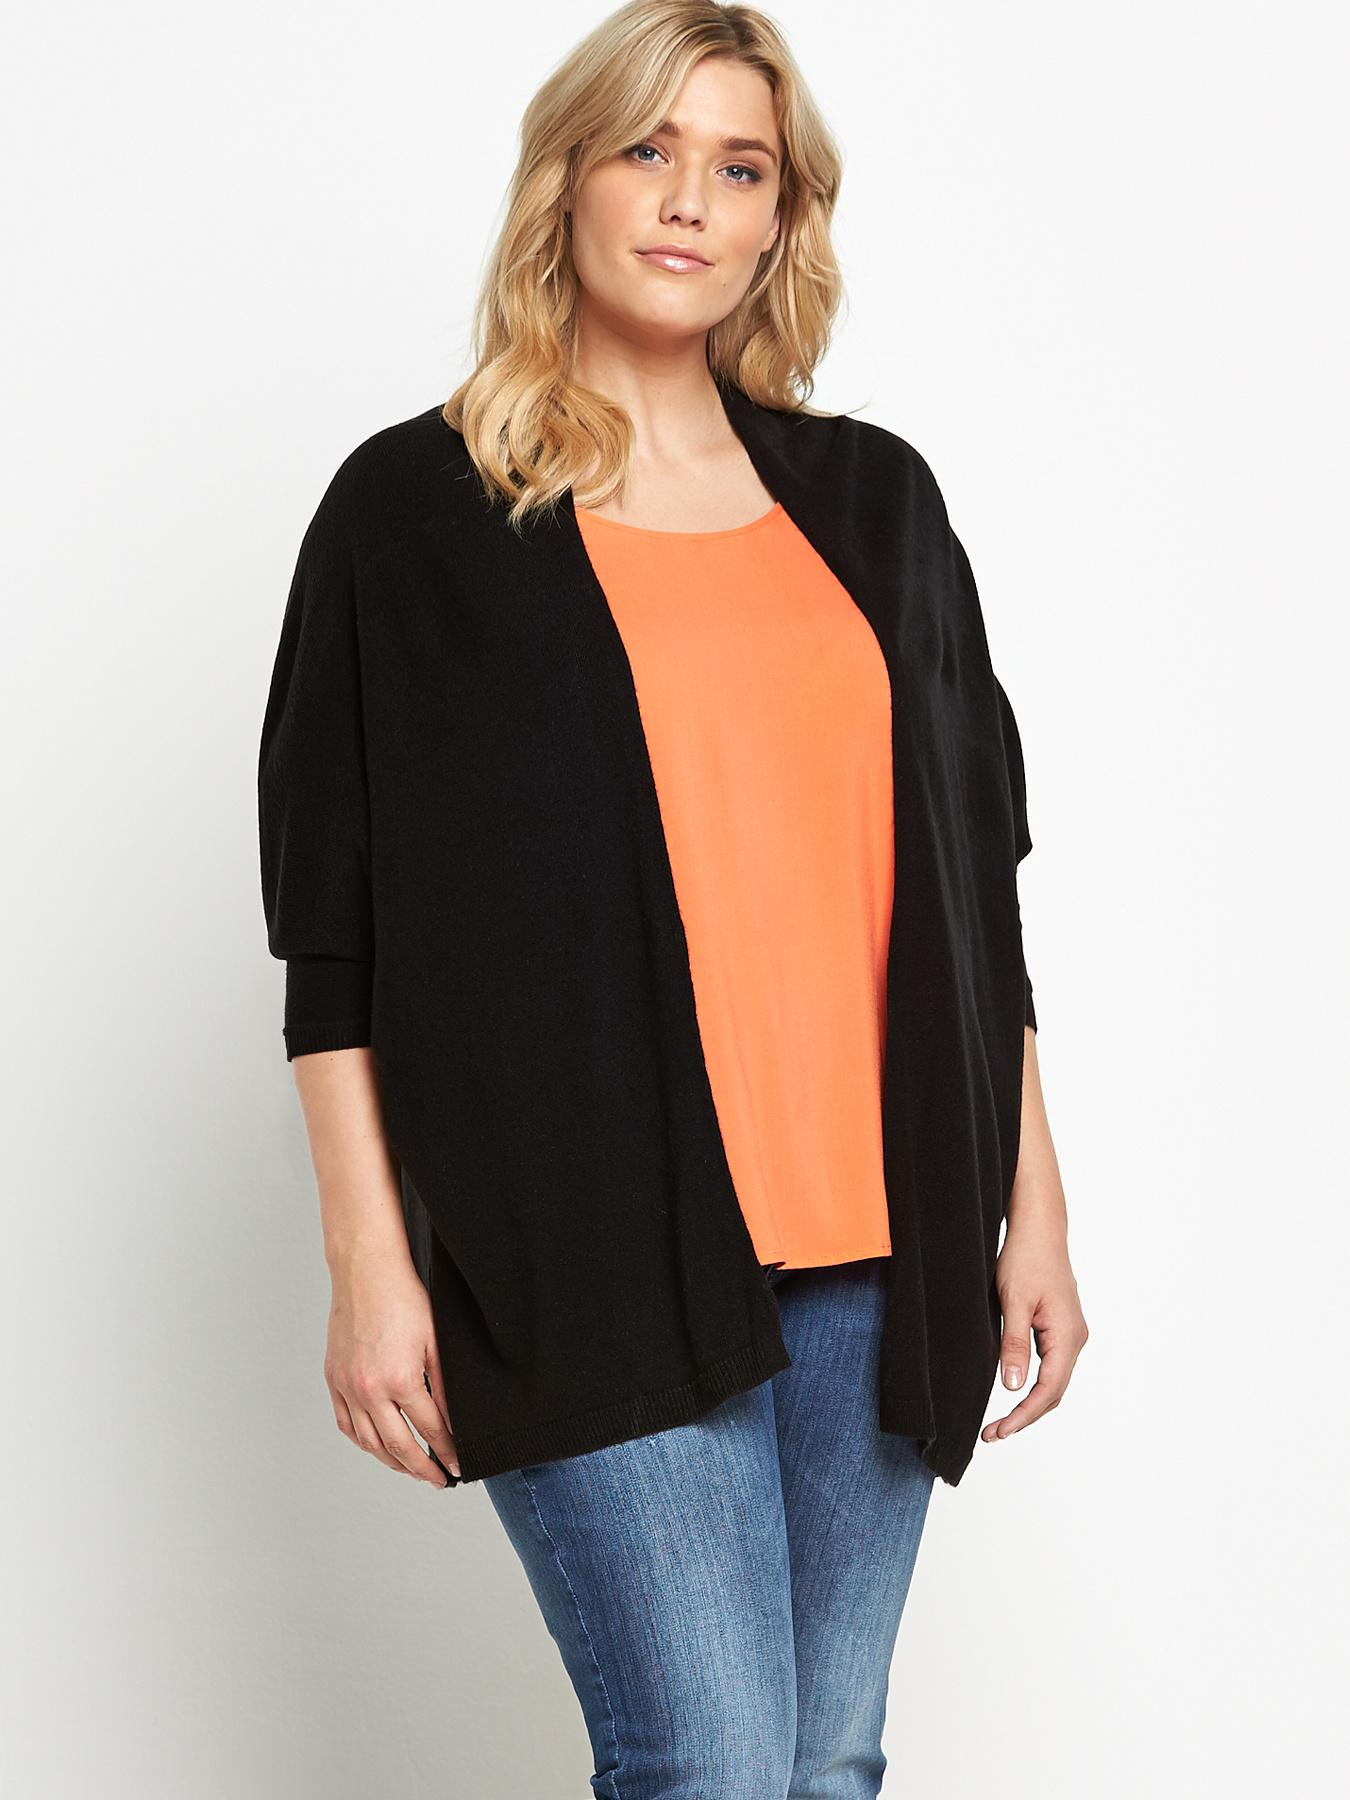 So Fabulous Drape Batwing Cardigan - Black, Black